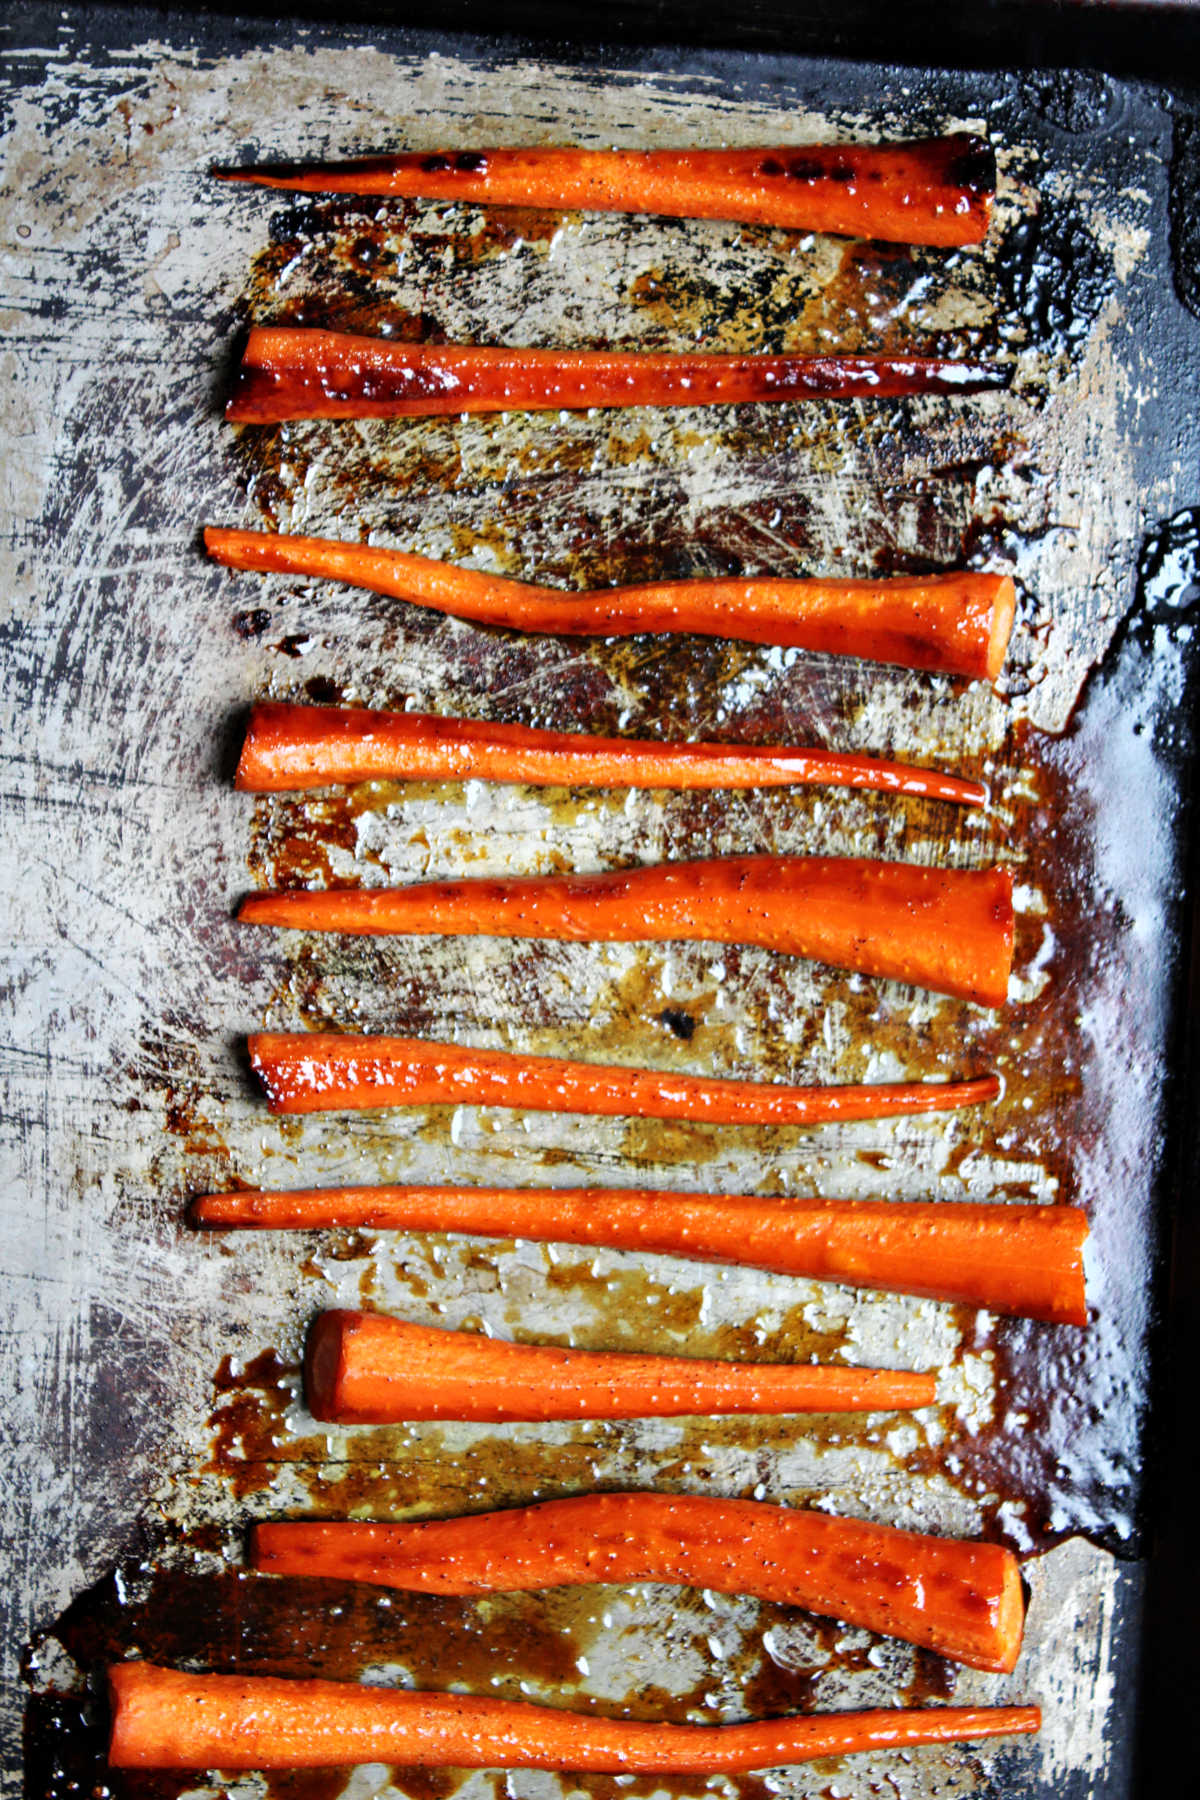 Oven baked carrots ready to eat on a baking sheet.